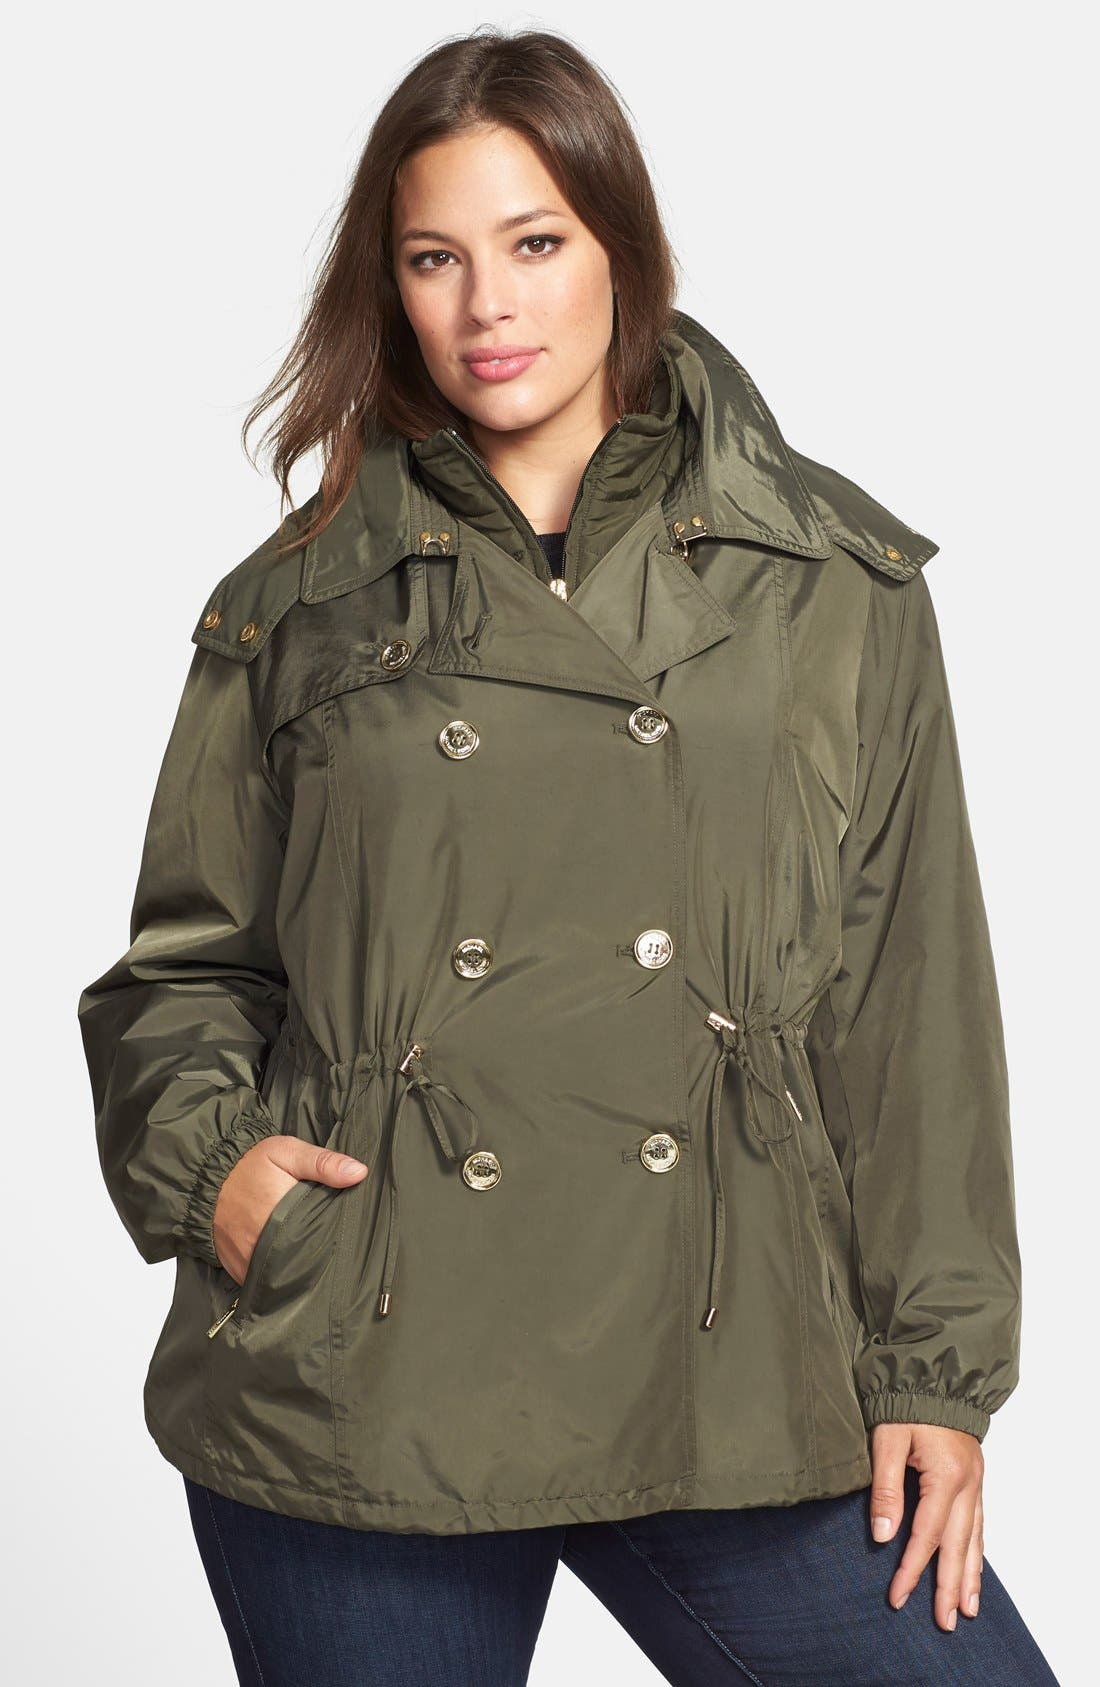 Alternate Image 1 Selected - MICHAEL Michael Kors Double Breasted Anorak with Detachable Hood & Bib (Plus Size)